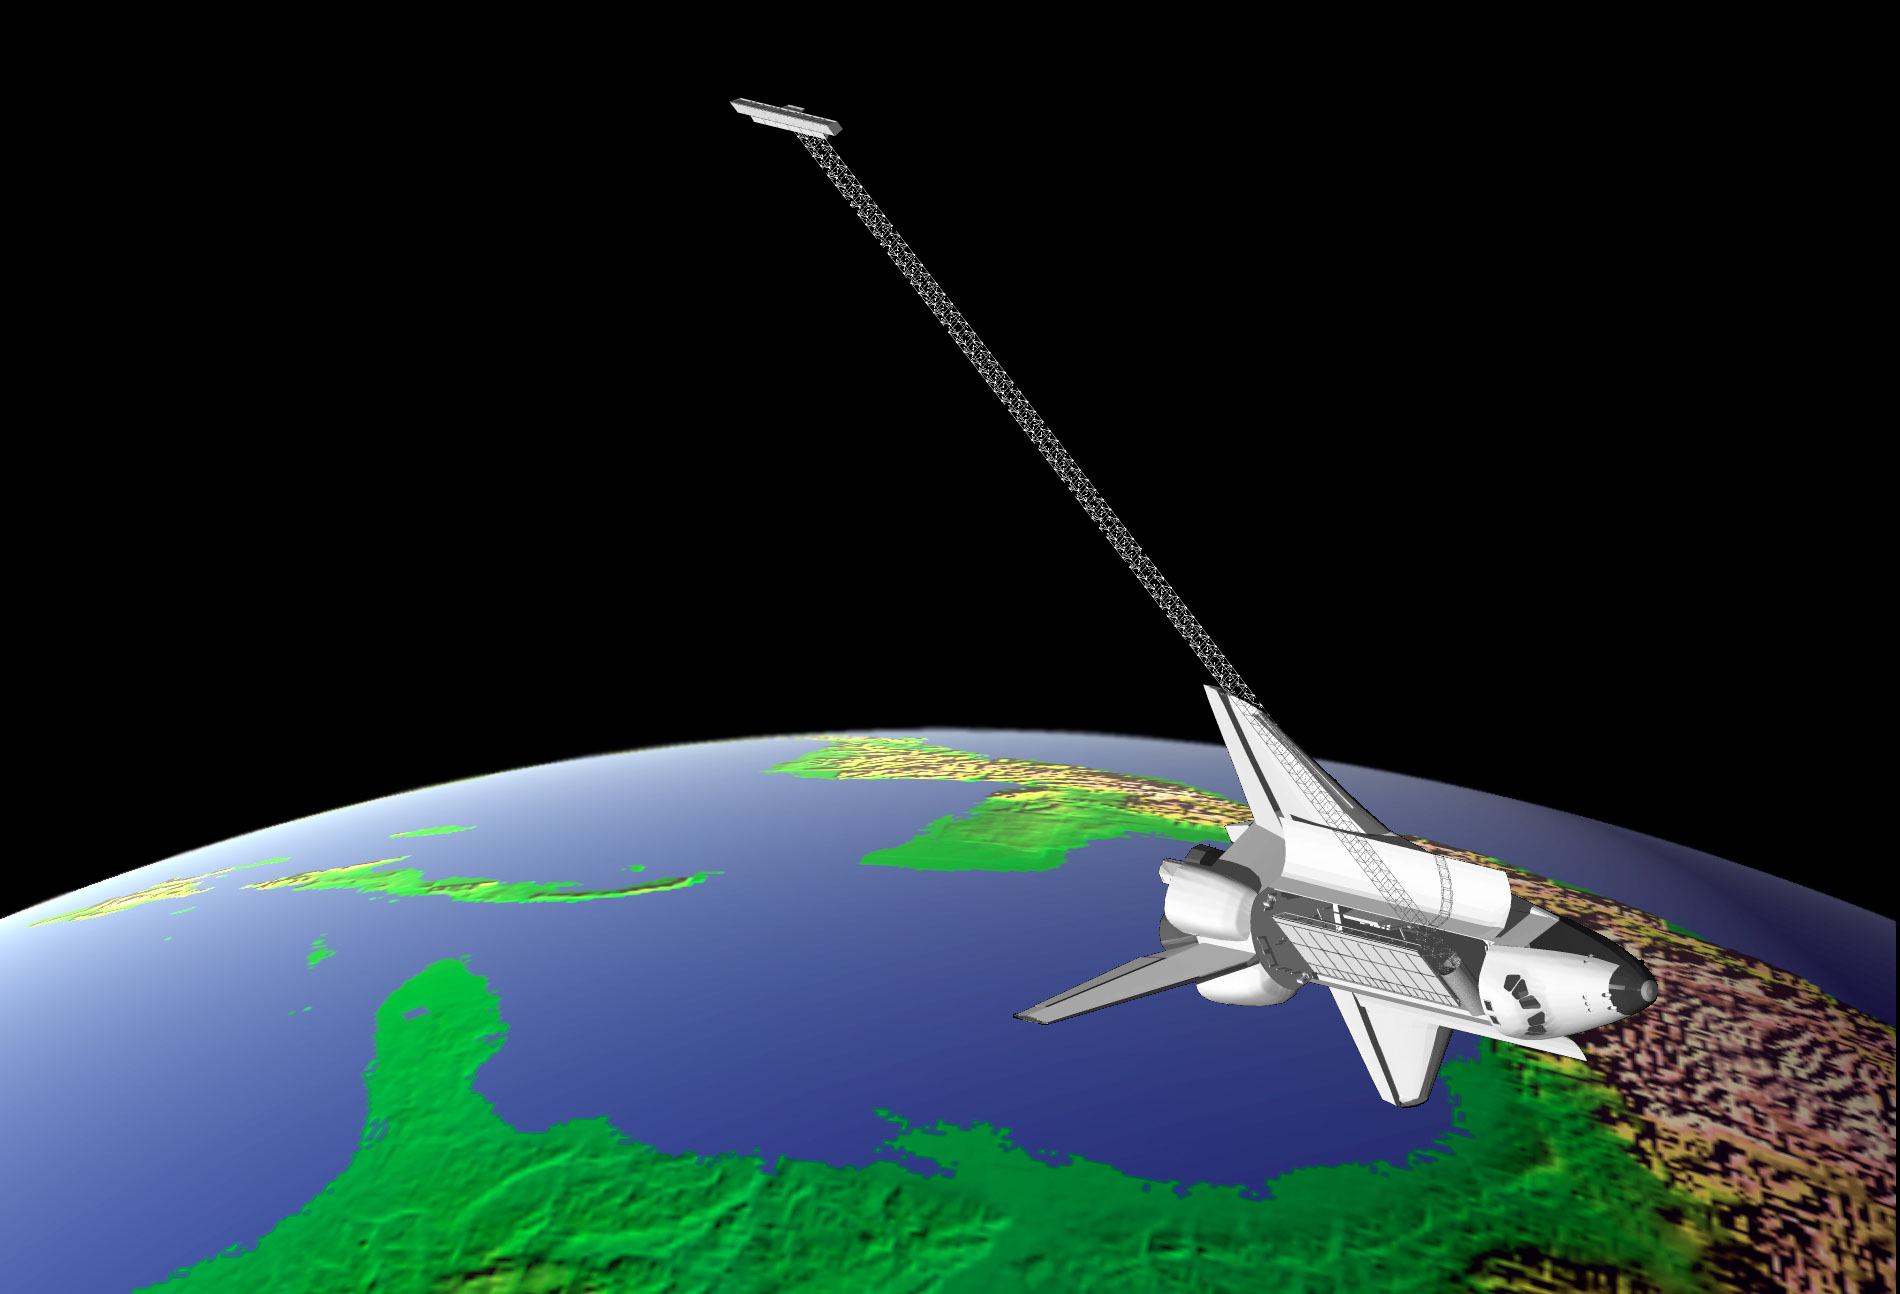 space shuttle radar topography mission - photo #1